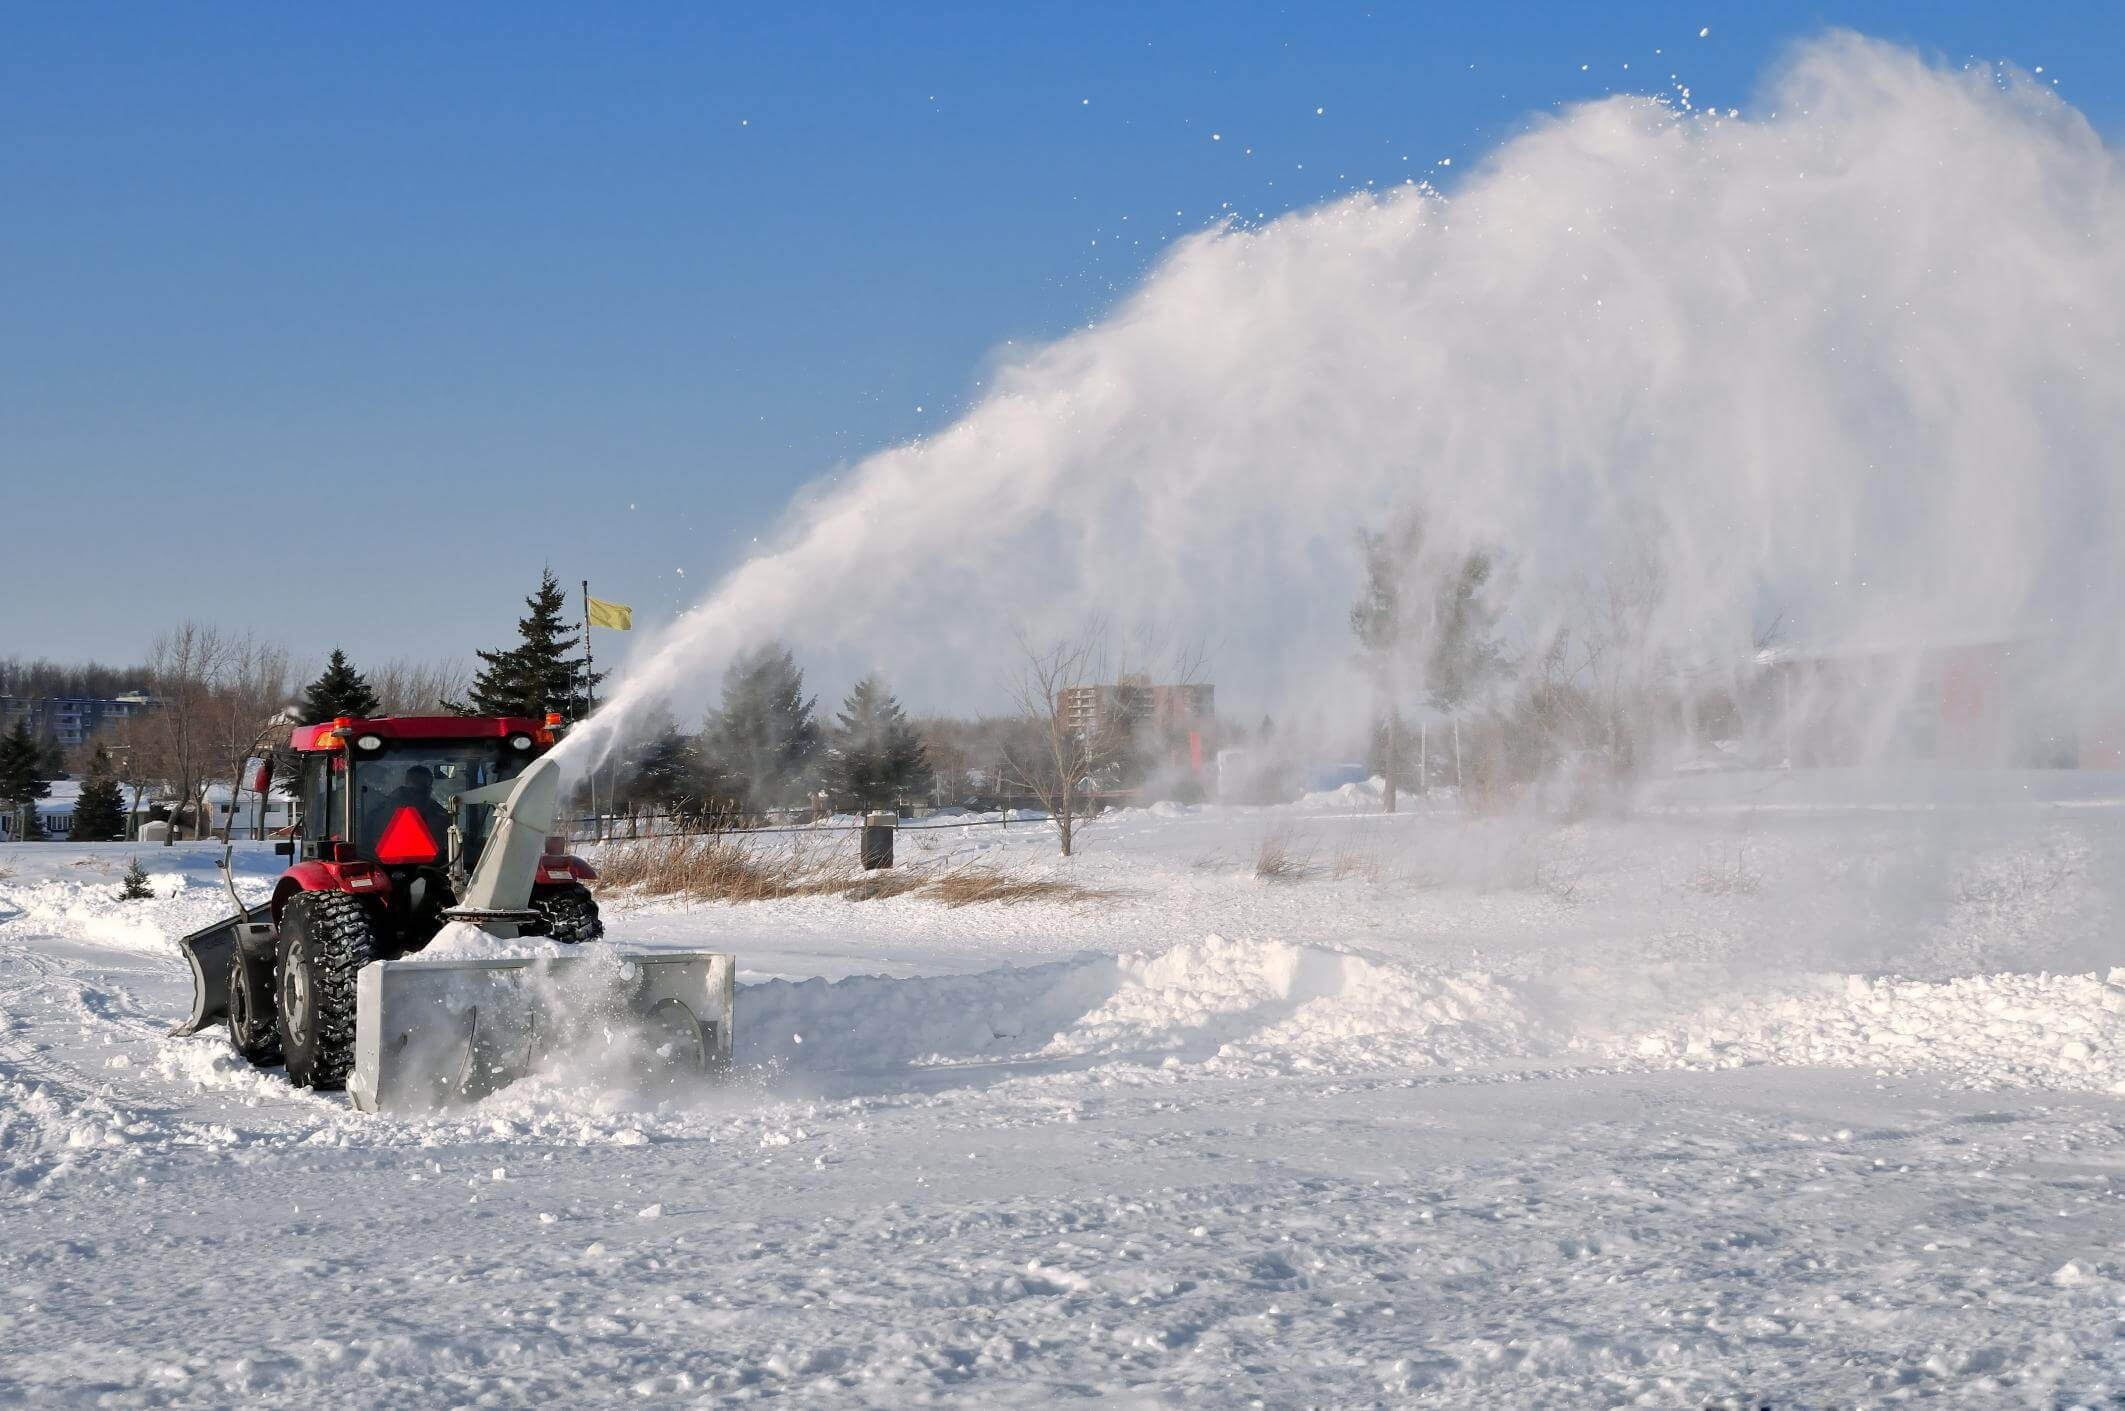 This is a picture of a parking lot snow removal.